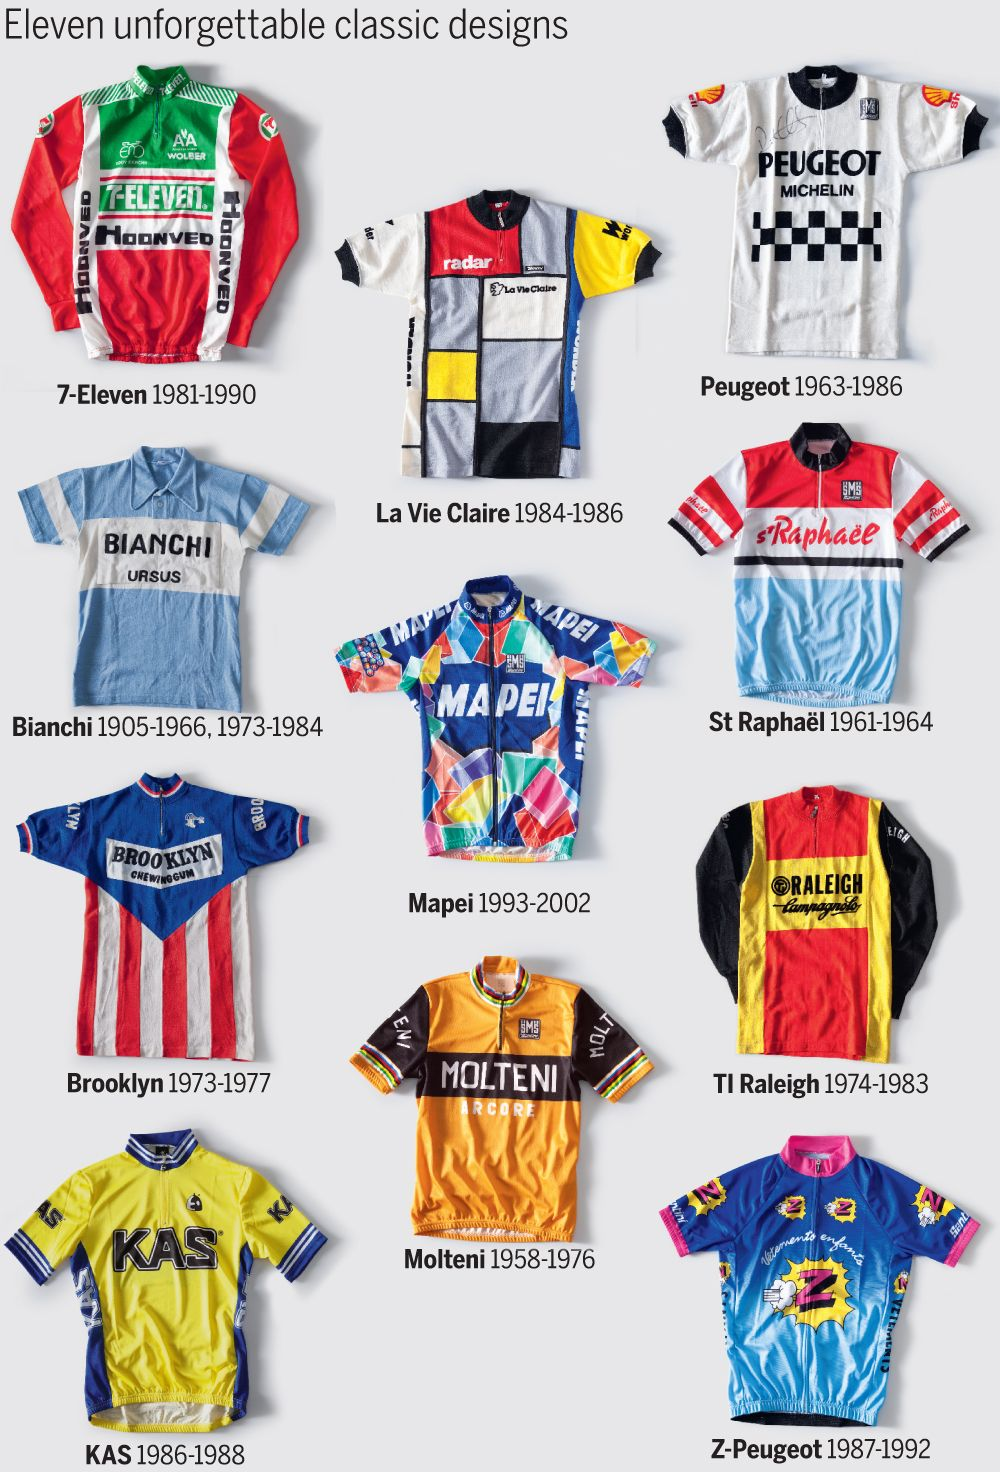 b6166193f Eleven unforgettable pro cycling jerseys......A look at the peloton s most  iconic jerseys --- (video)